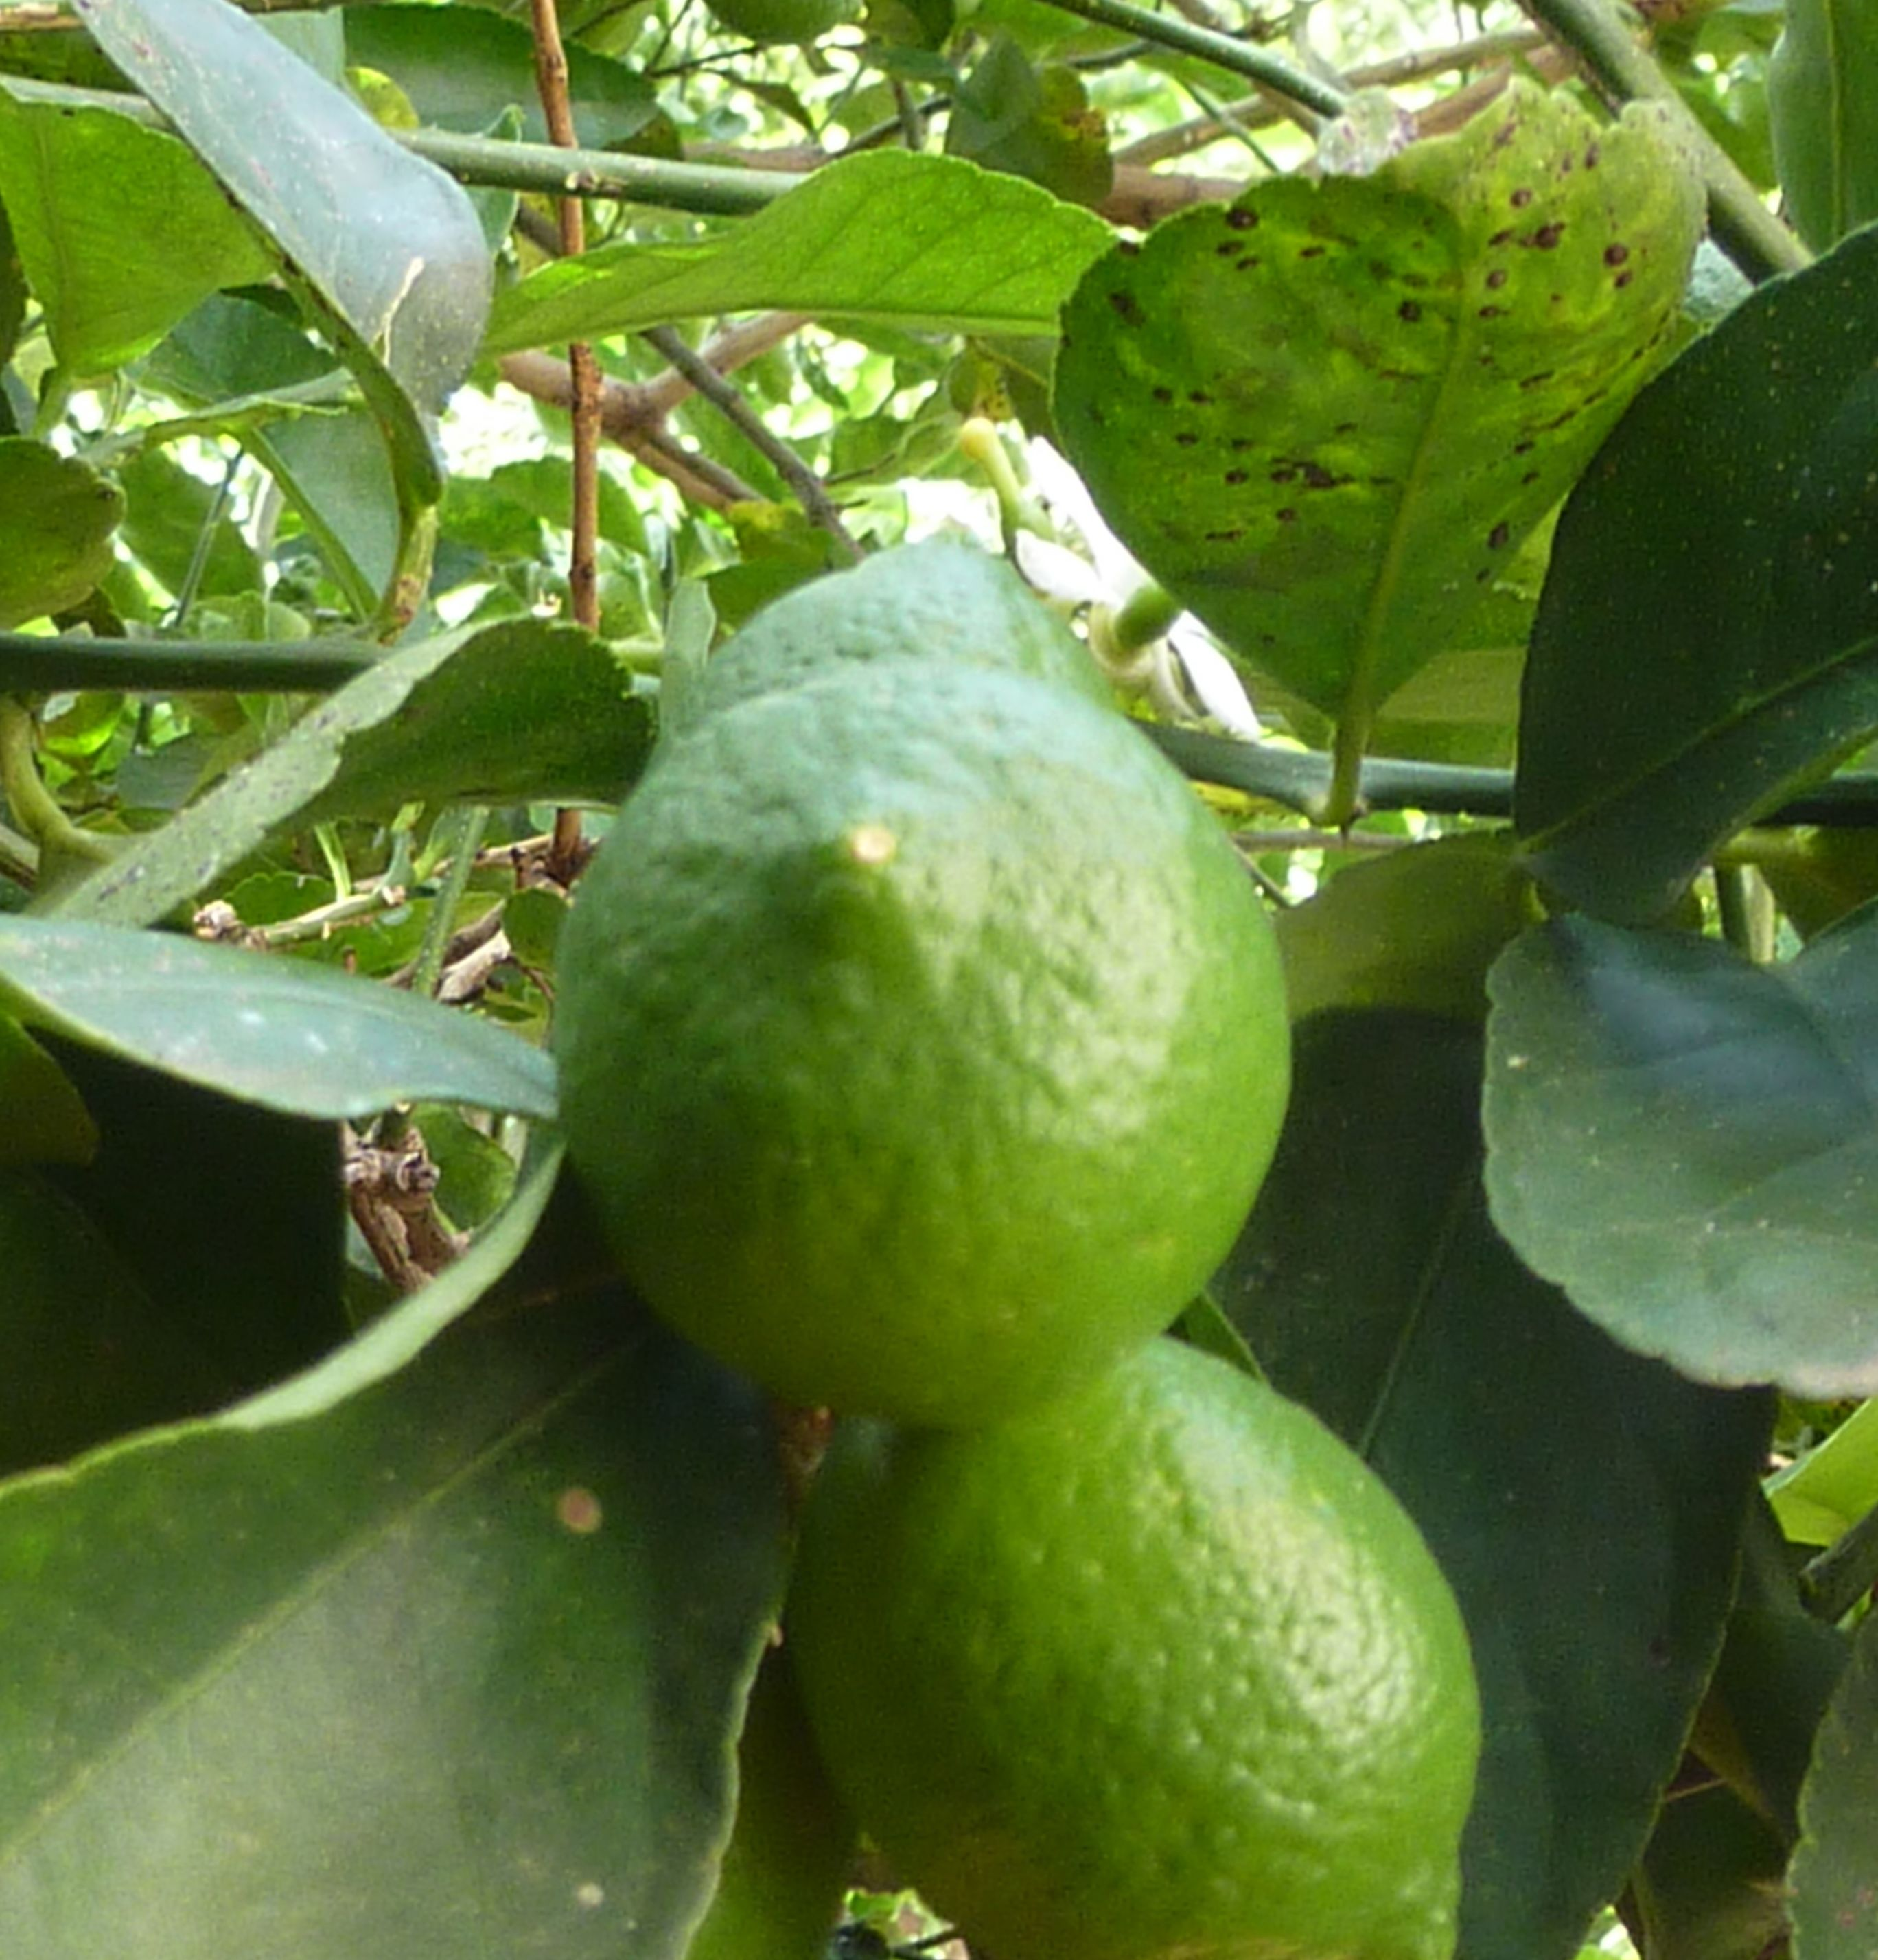 Limes Essential To Cuban Cooking In My Book A Dash Of Fresh Lime Juice Is The Perfect Foil To The Cr Strawberry Detox Water Fertility Smoothie Cuban Recipes